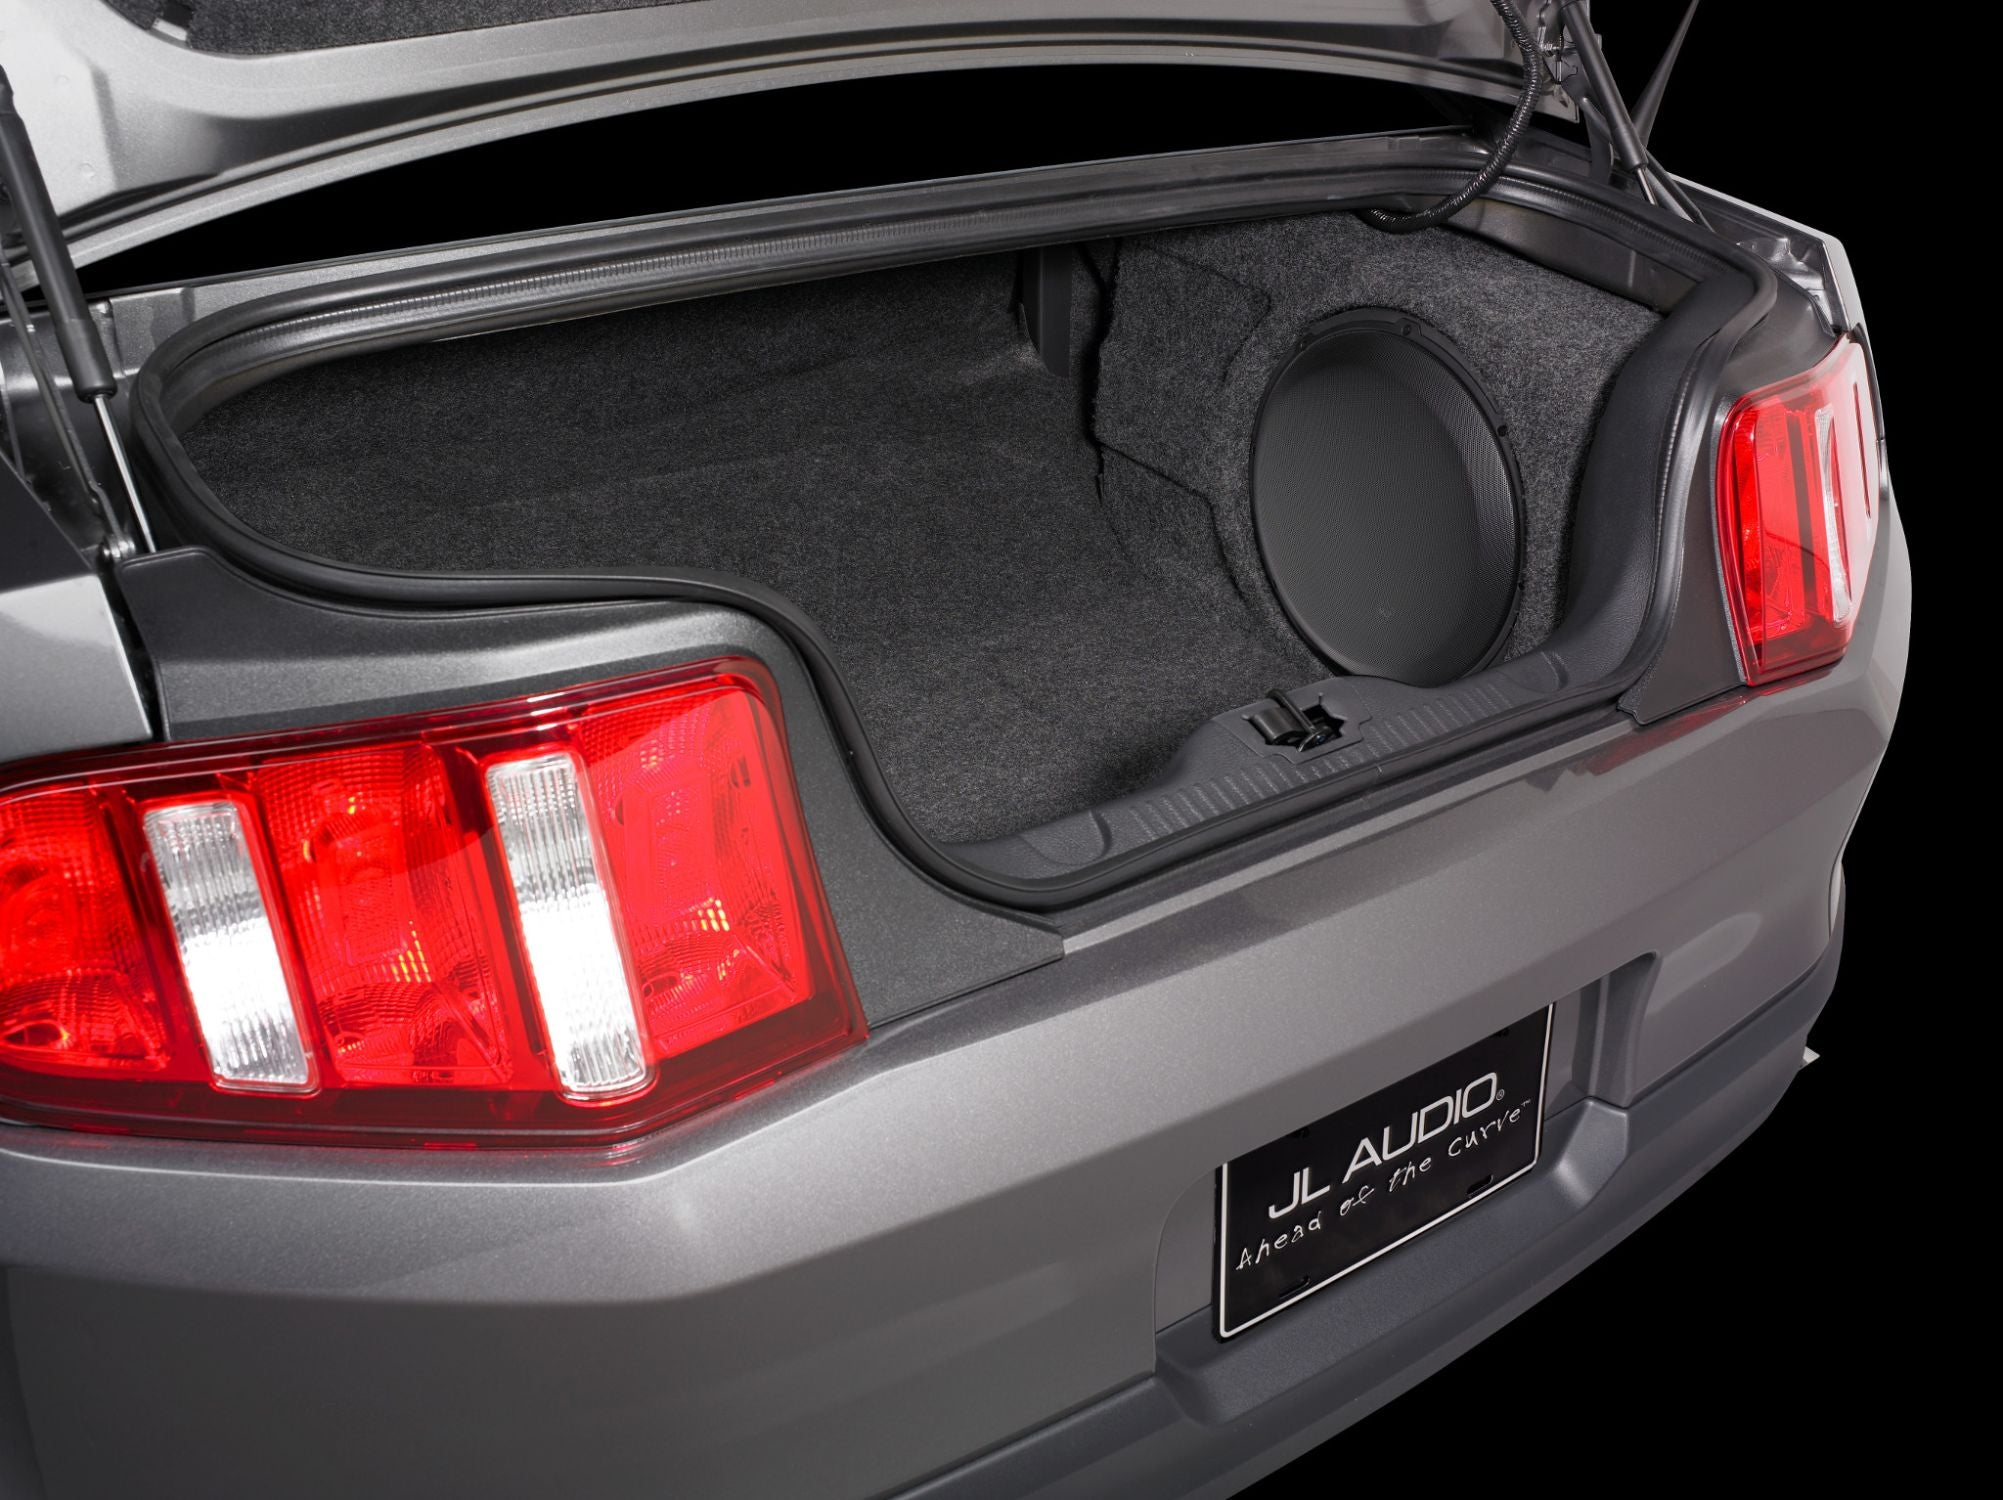 SB-F-MUCUPE2-13W3v3 Stealthbox Installed in Vehicle